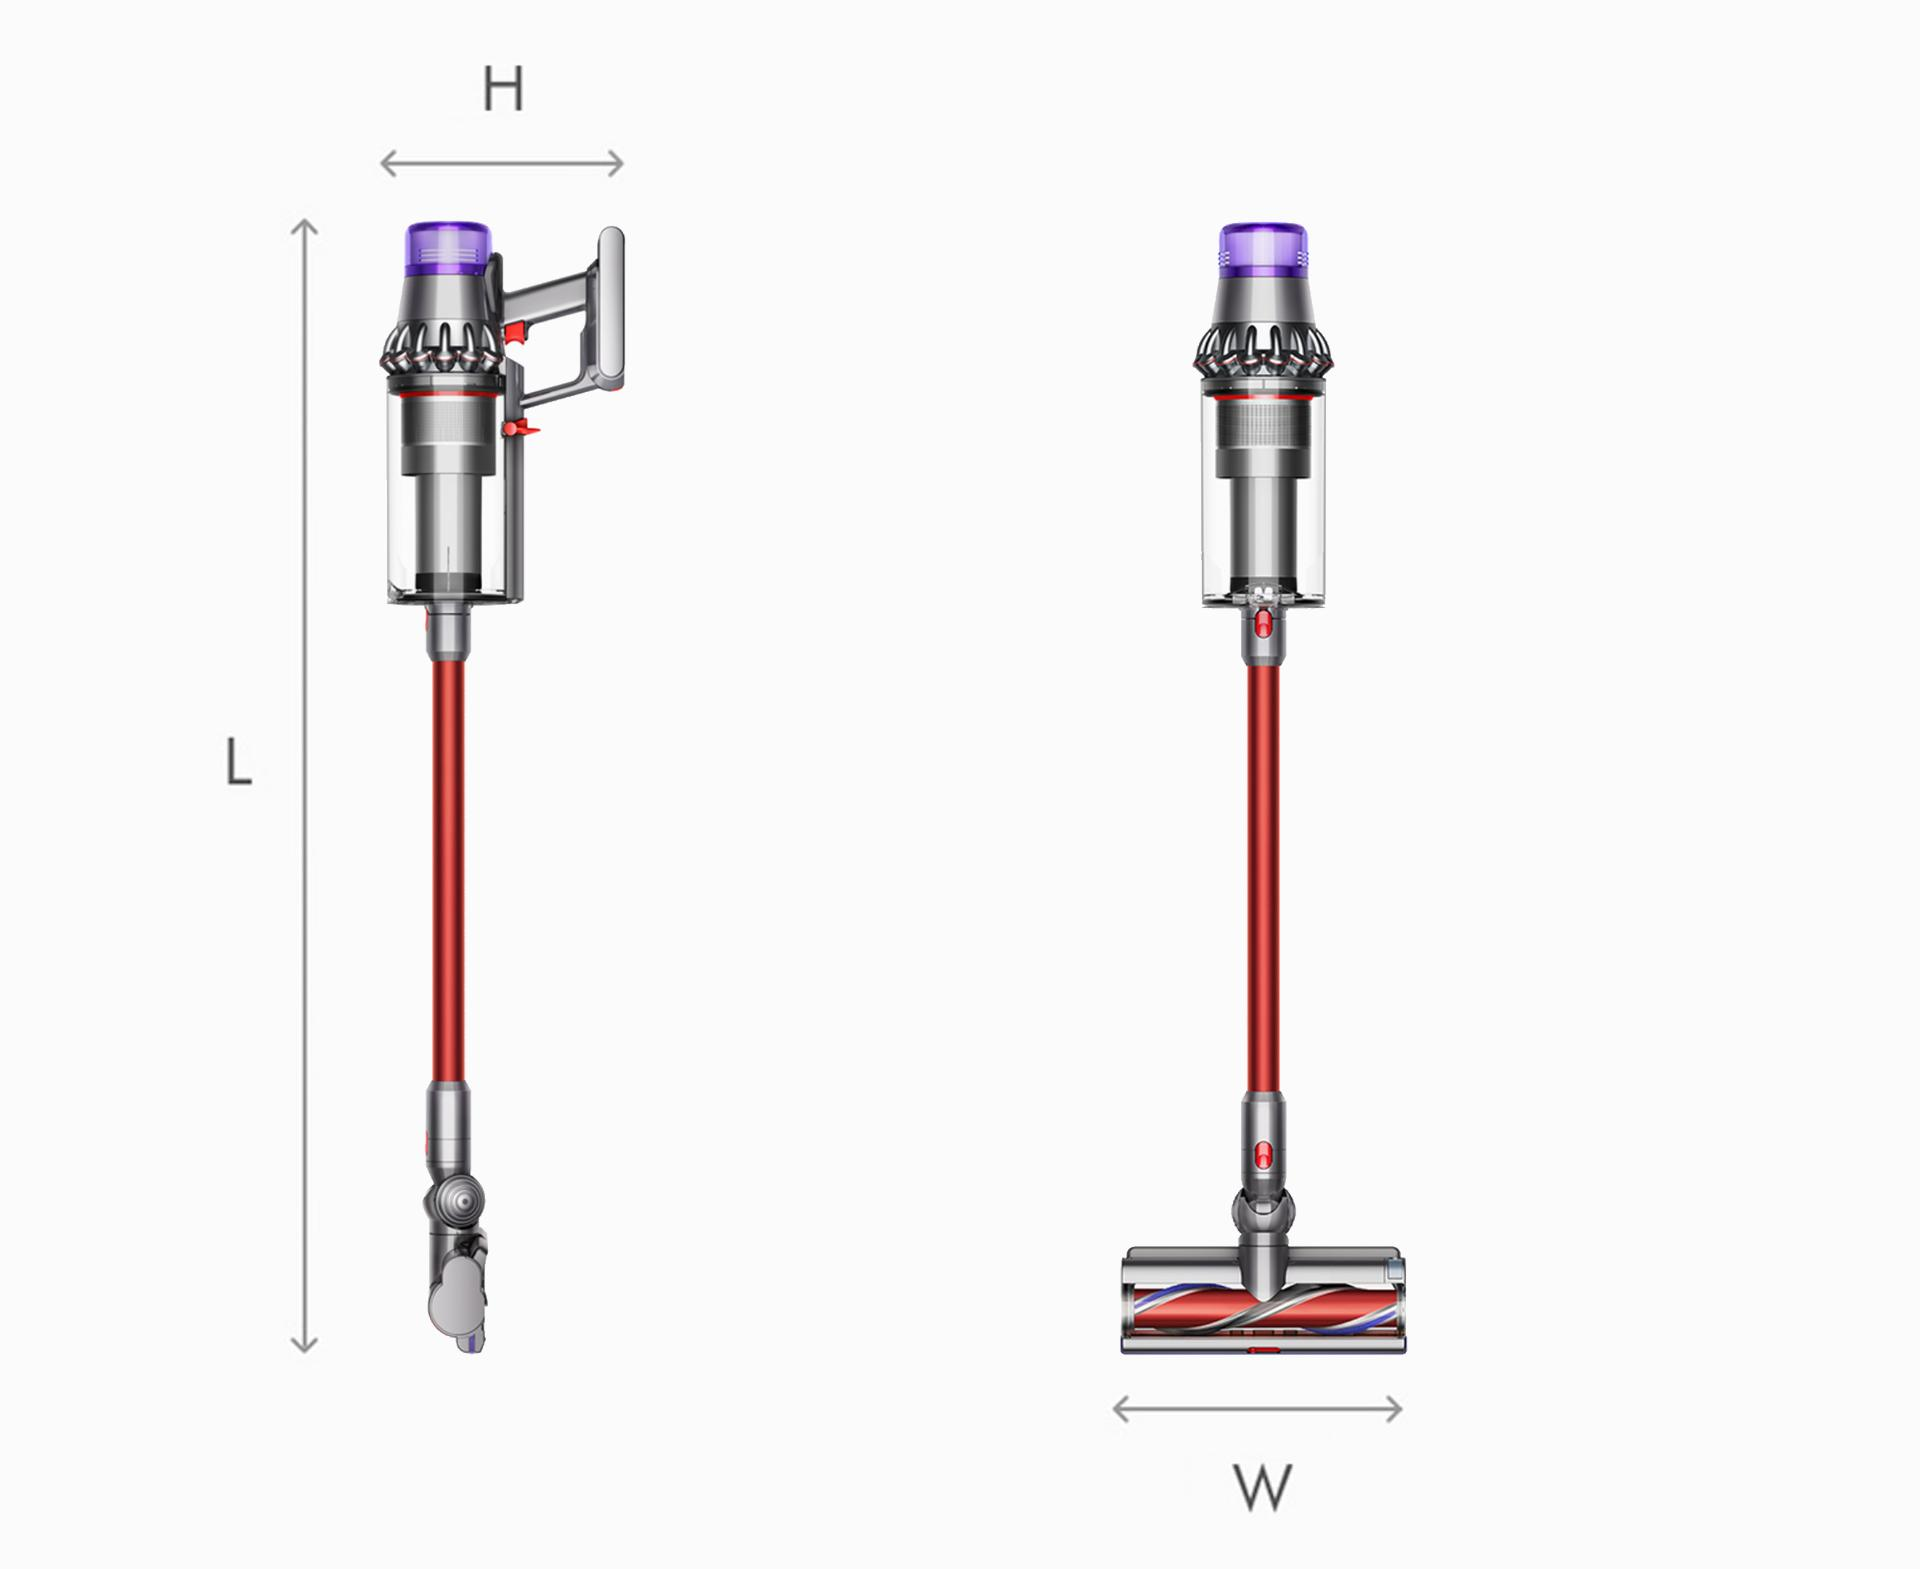 Illustration of Dyson V11 Outsize vaccum cleaner dimensions